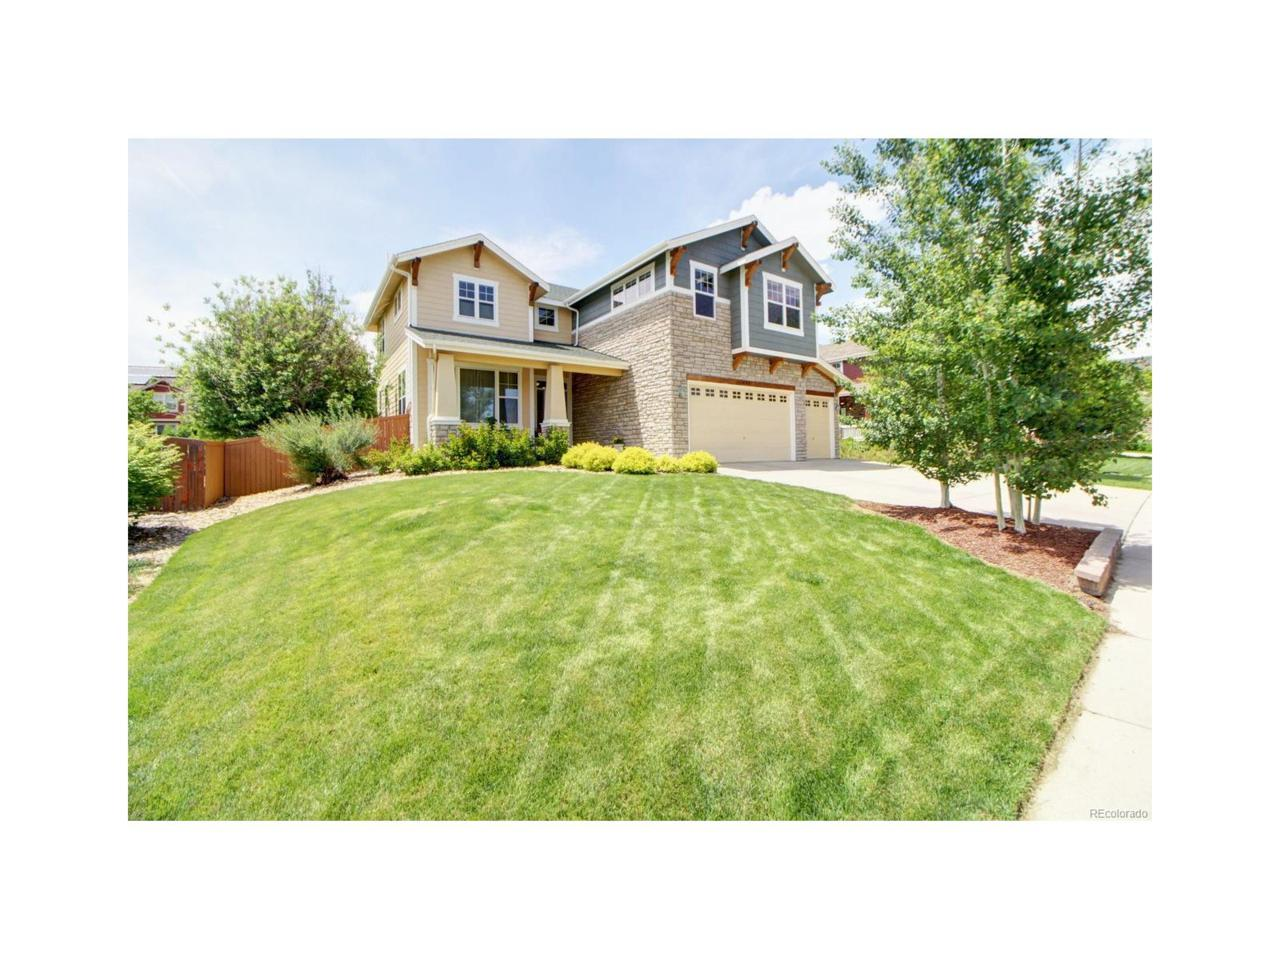 14005 Mckay Park Circle, Broomfield, CO 80023 (MLS #5939736) :: 8z Real Estate